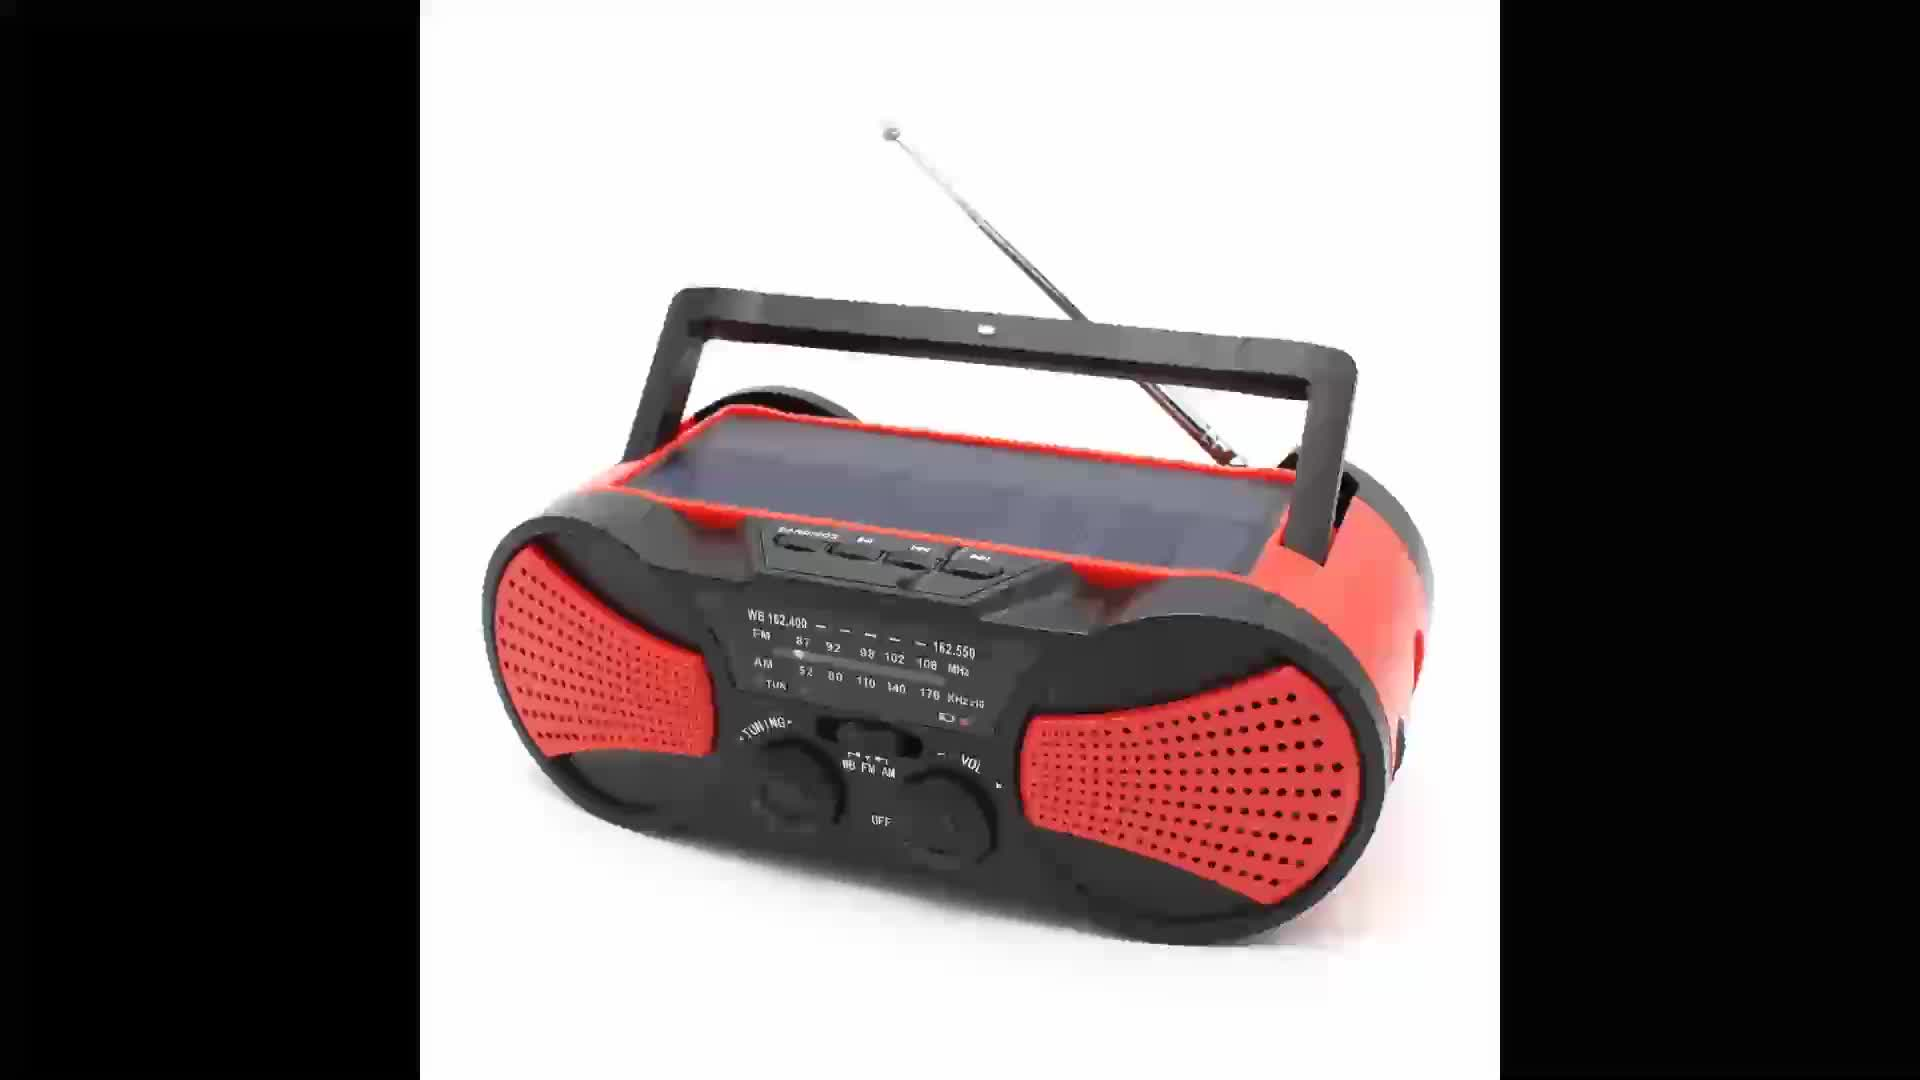 Solar crank emergency radio with LED reading lamp and 2 built-in speakers